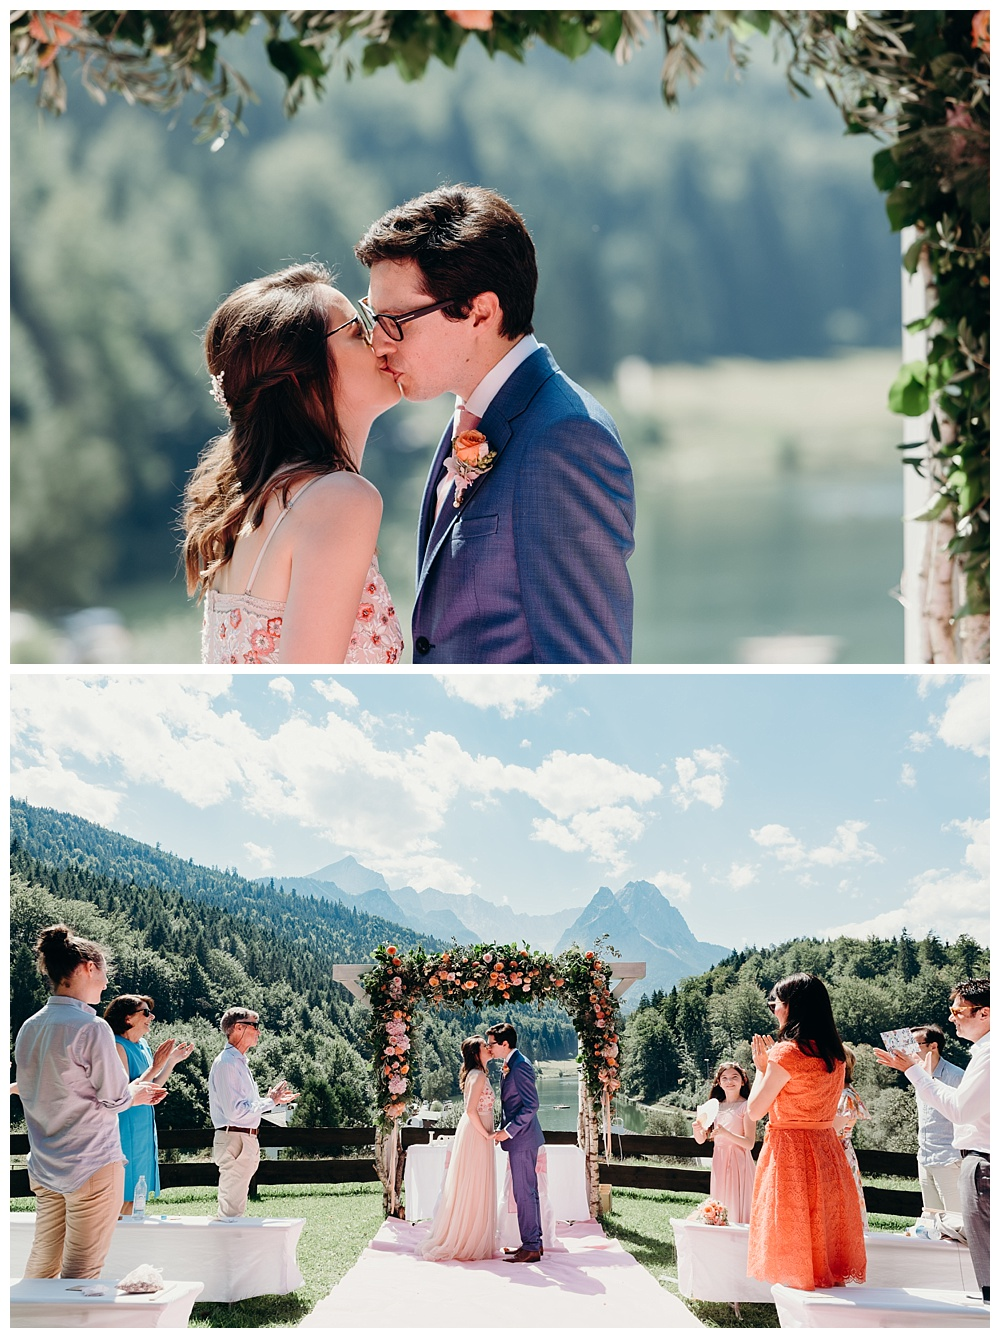 Garmisch Partenkirchen wedding photography ceremony